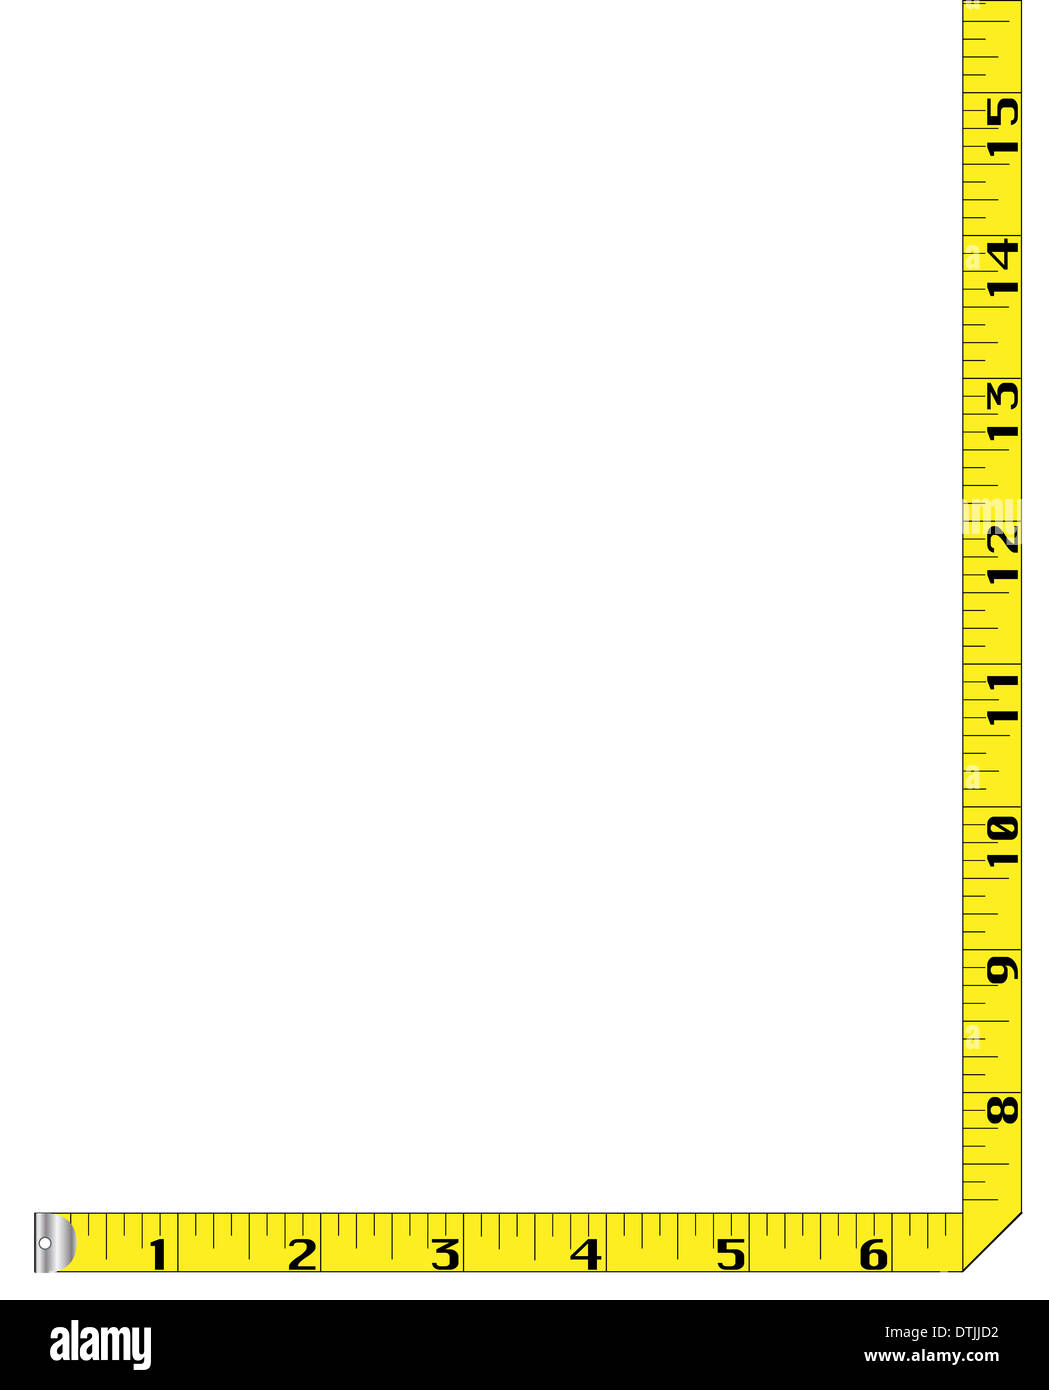 Measuring Tape Page Border Diagram A Created From Rag Measure Stock Photo 66792462 Rh Alamy Com